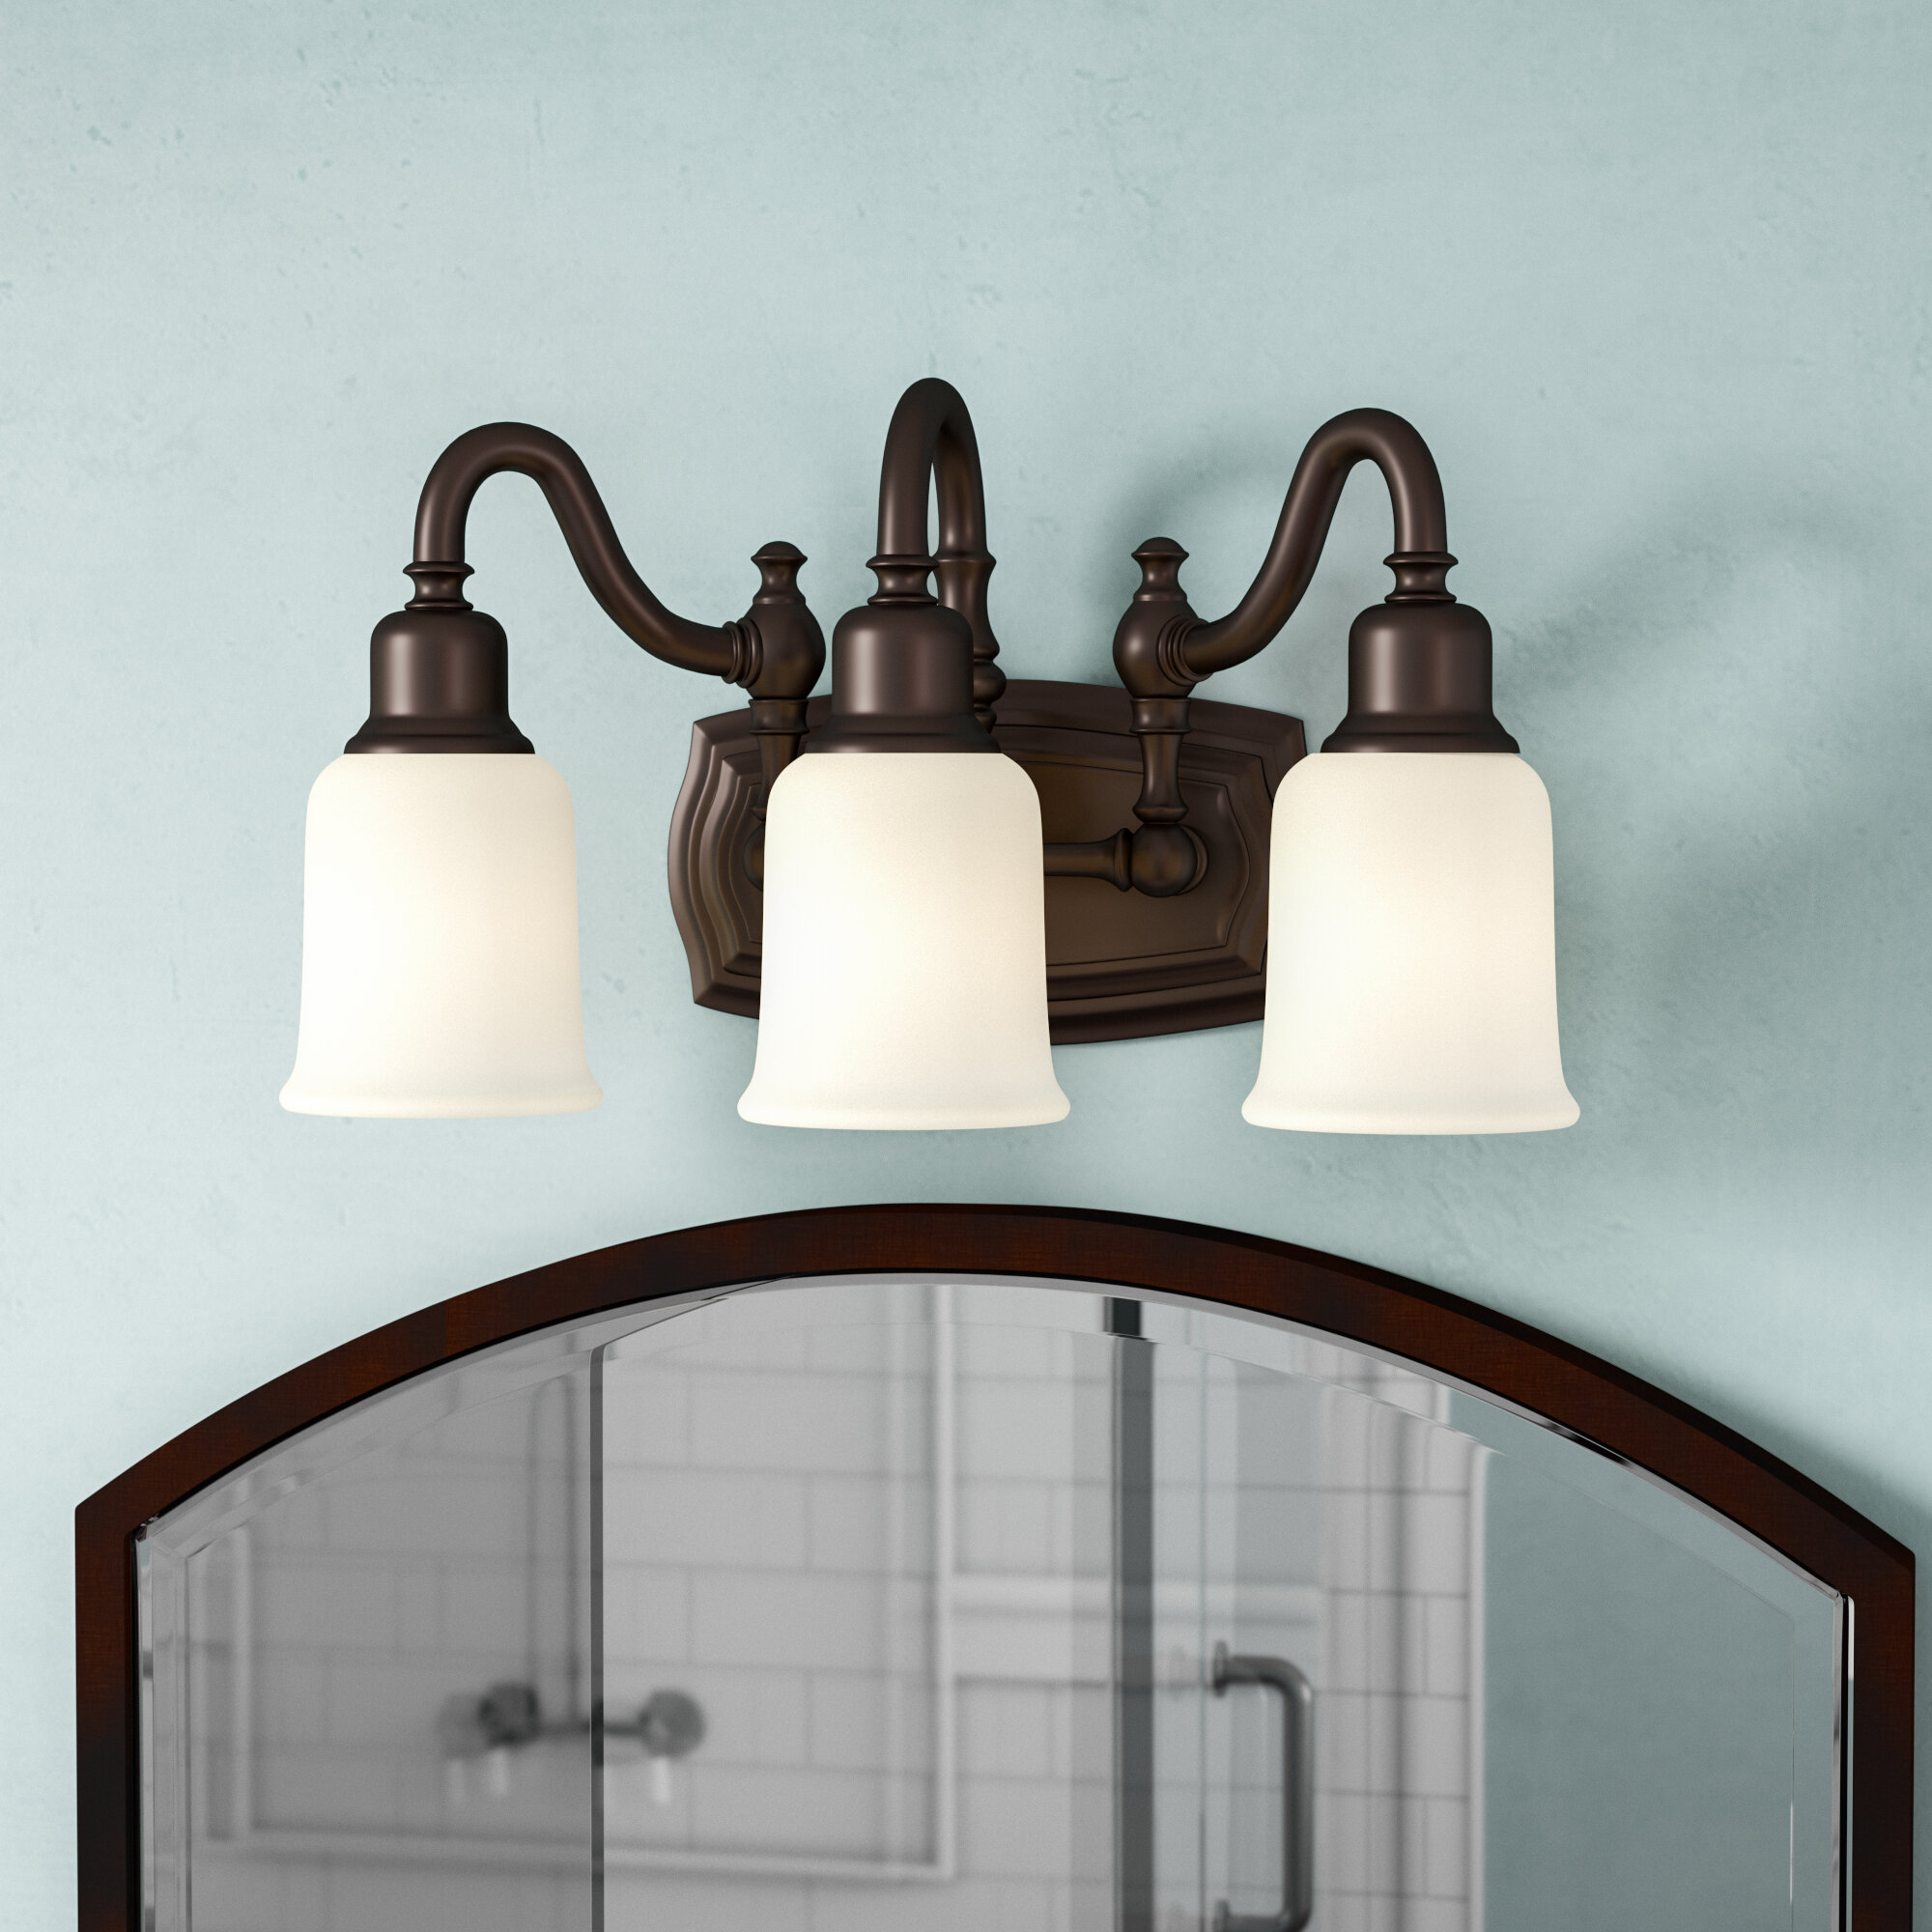 Three Posts Biggerstaff 3-Light Vanity Light & Reviews | Wayfair